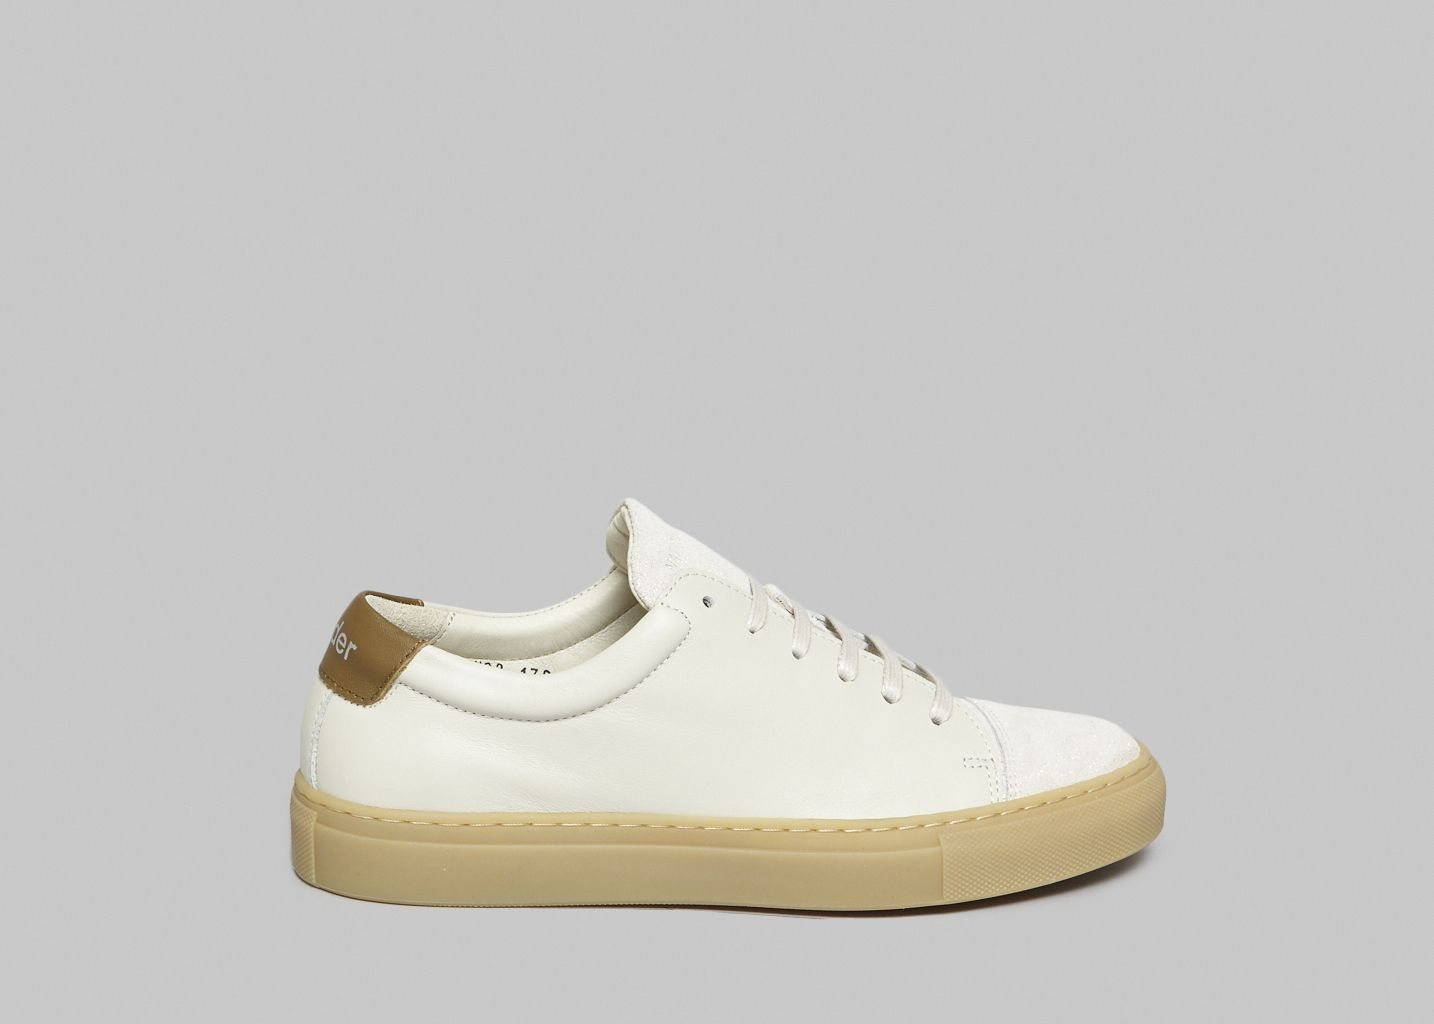 Sneakers National Standard x Polder - National Standard